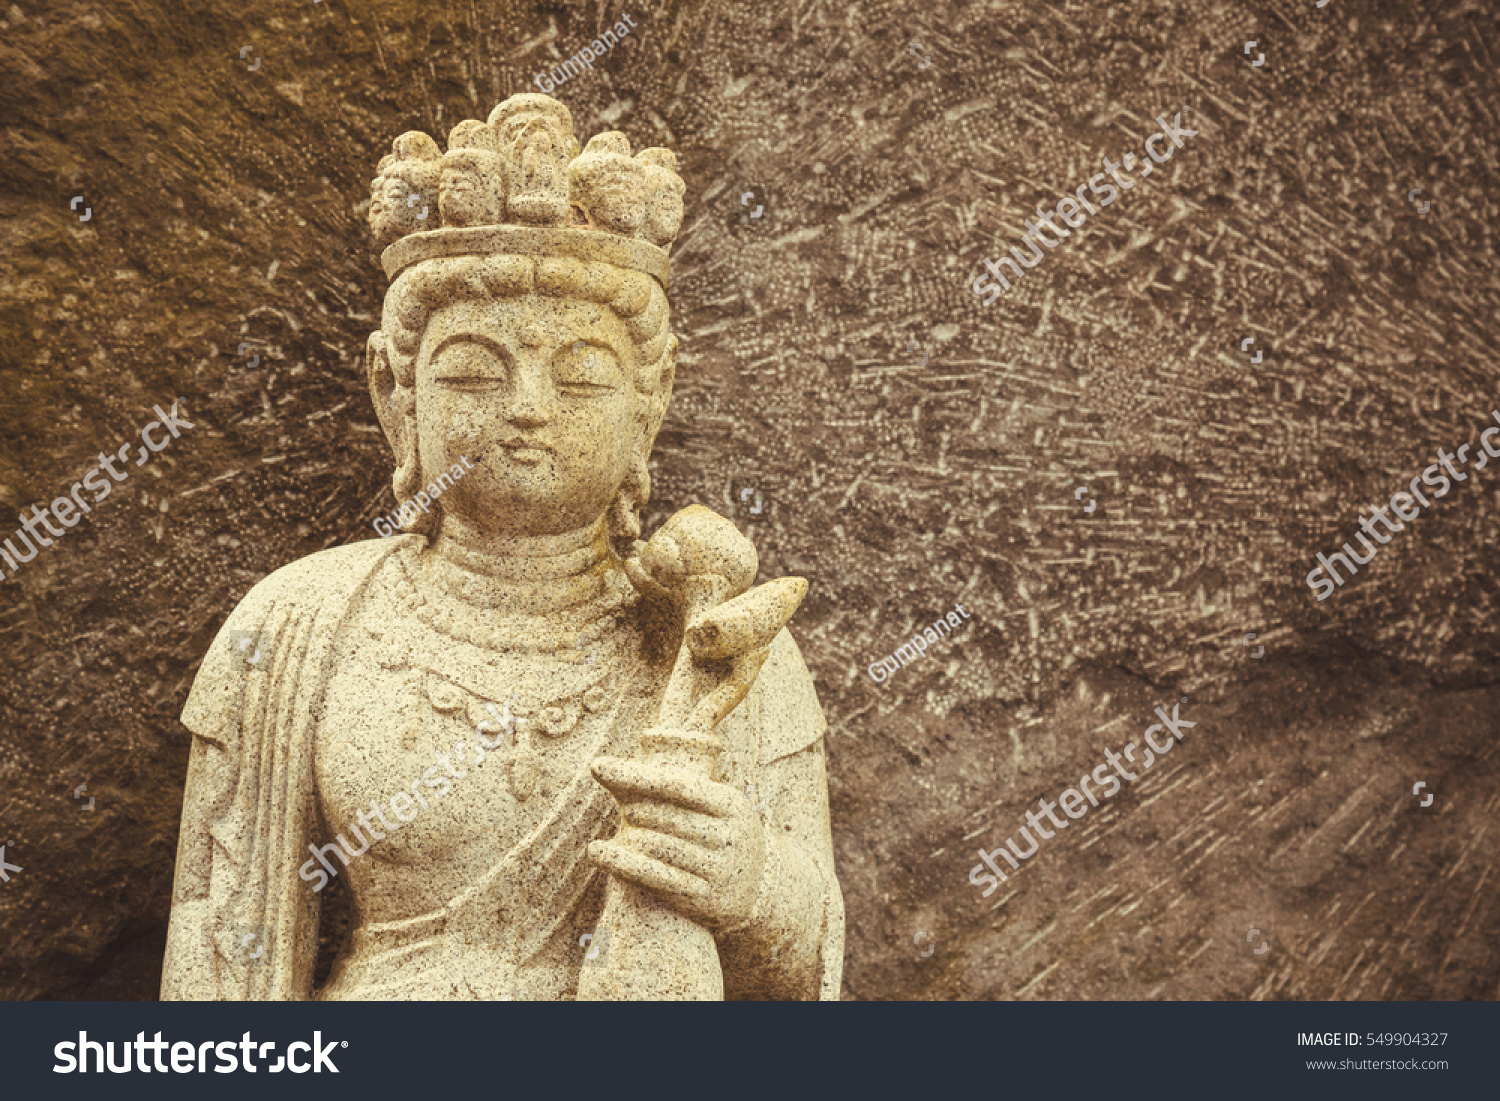 Stone carving buddha statue sculpture japanese stock photo